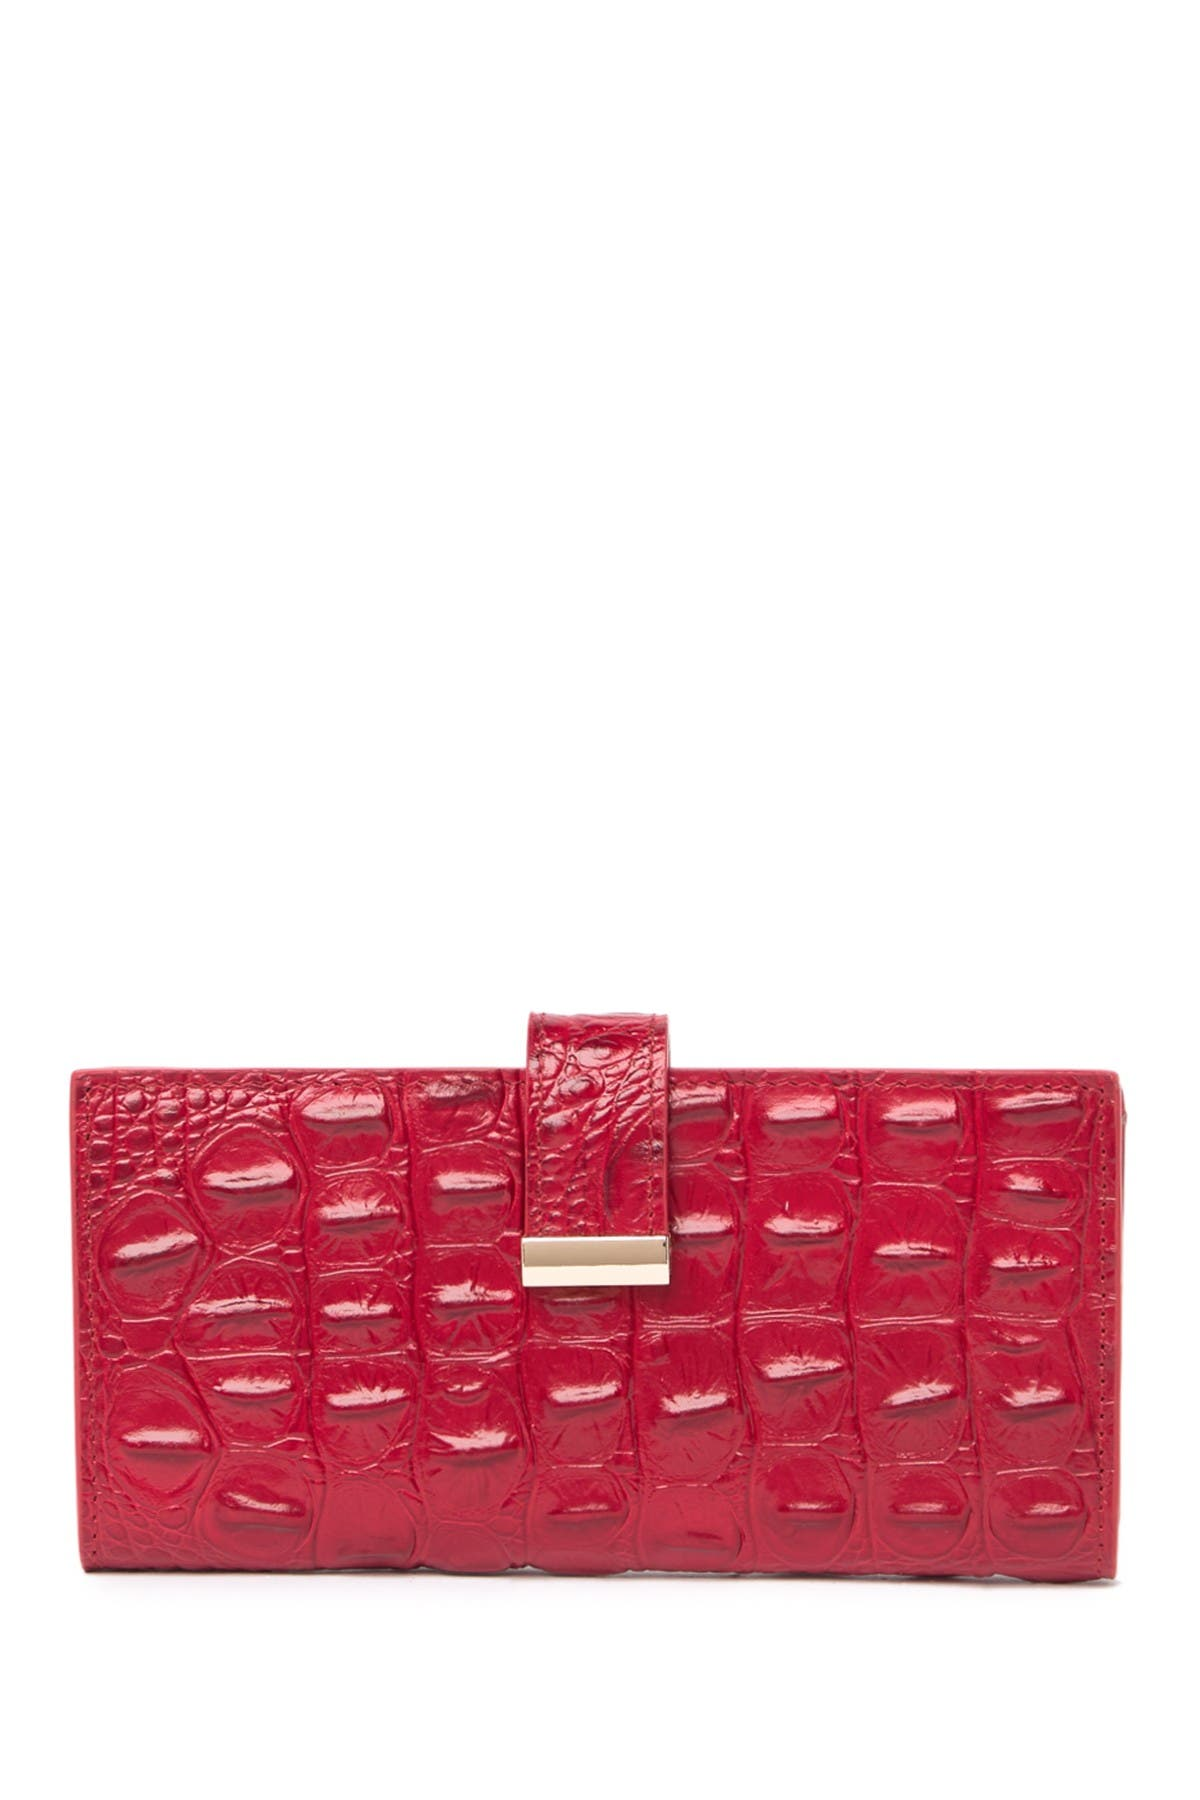 Image of Vicenzo Leather Sasha Croc Leather Wallet